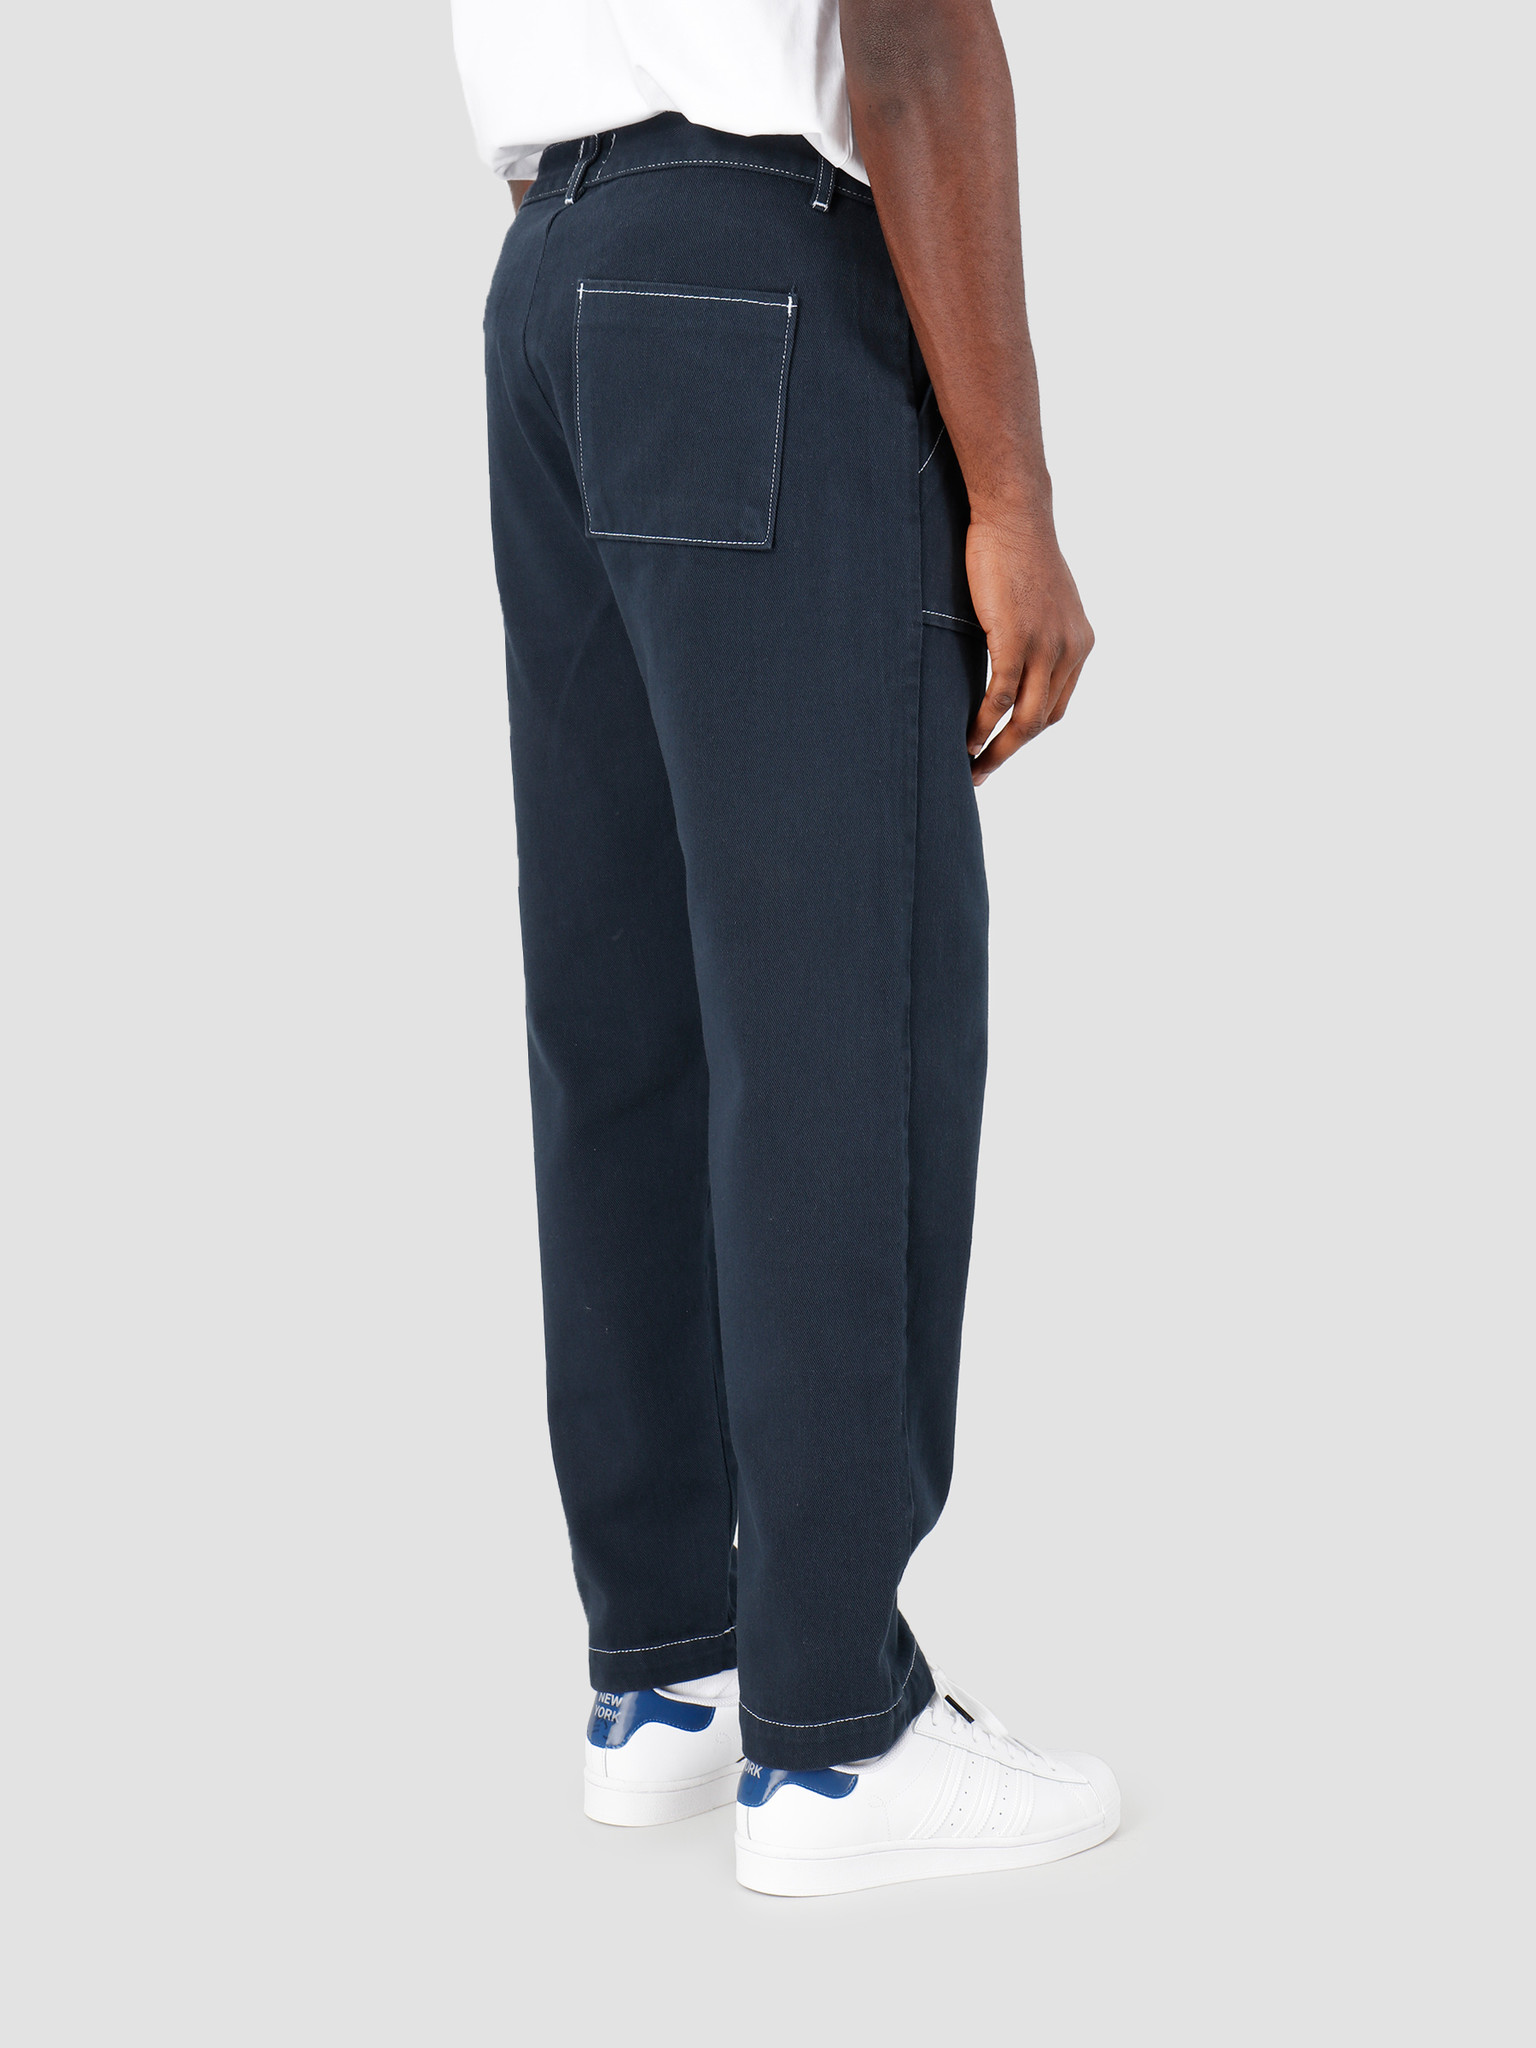 Arte Antwerp Arte Antwerp Paul Pants Navy SS20-038P